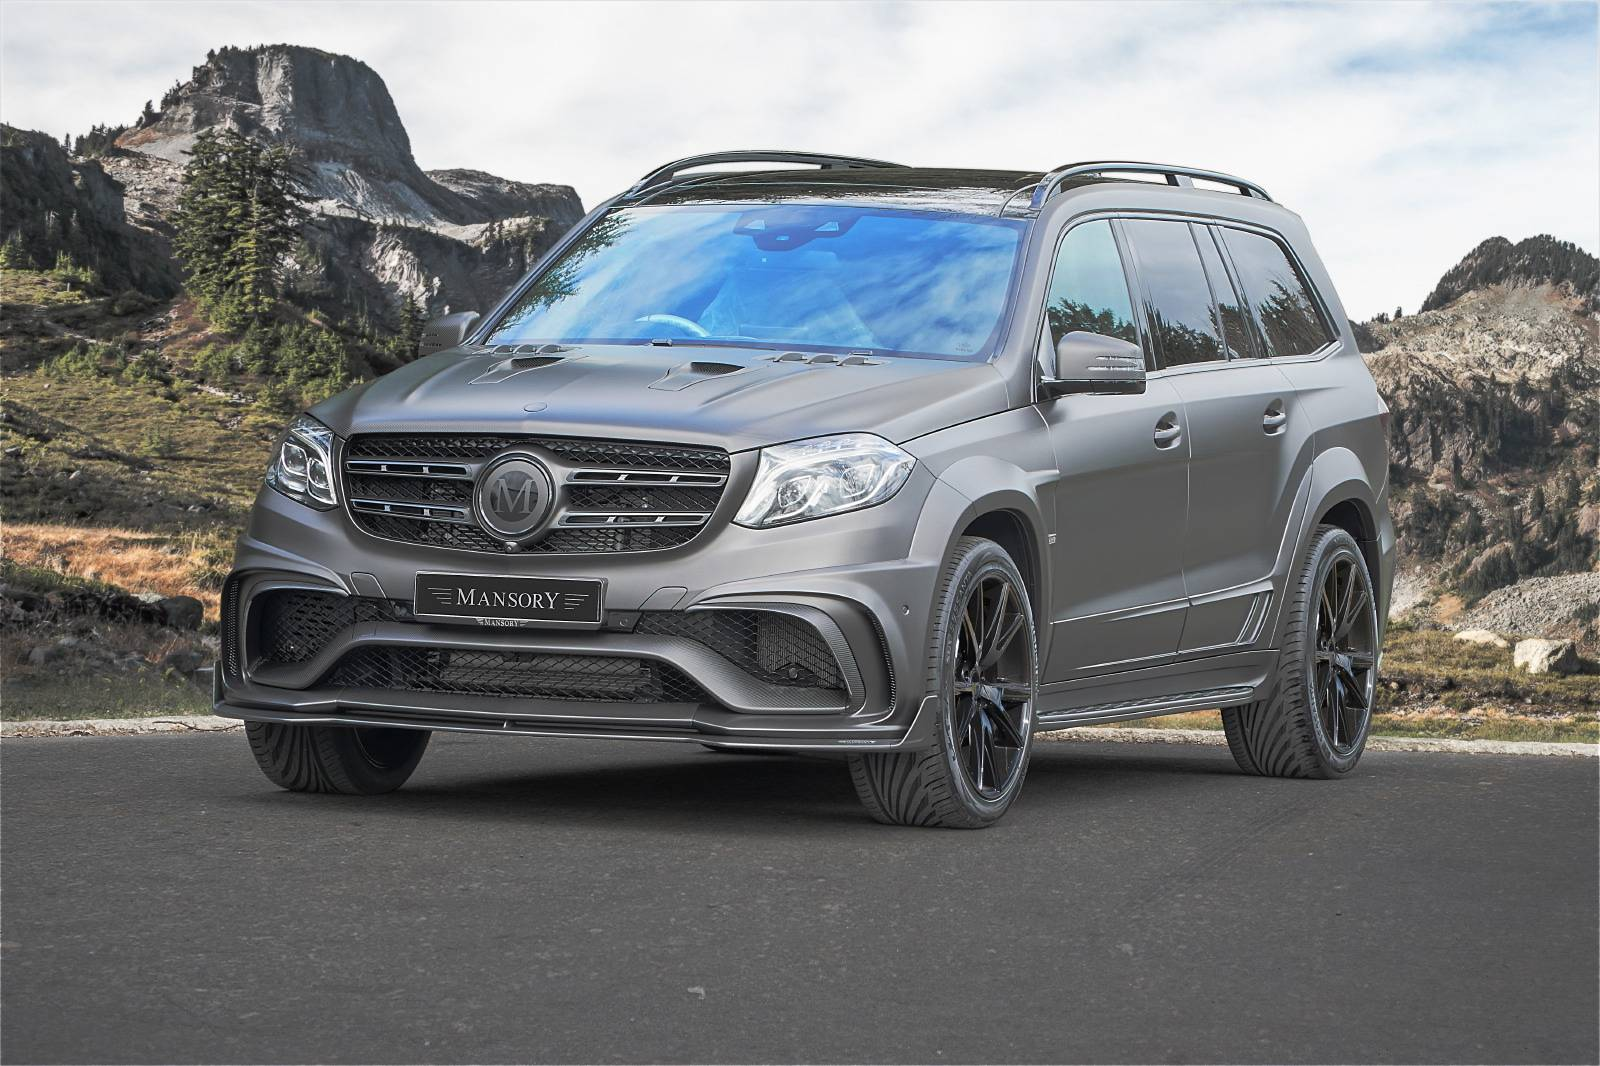 official 840hp mercedes amg gls 63 by mansory gtspirit. Black Bedroom Furniture Sets. Home Design Ideas